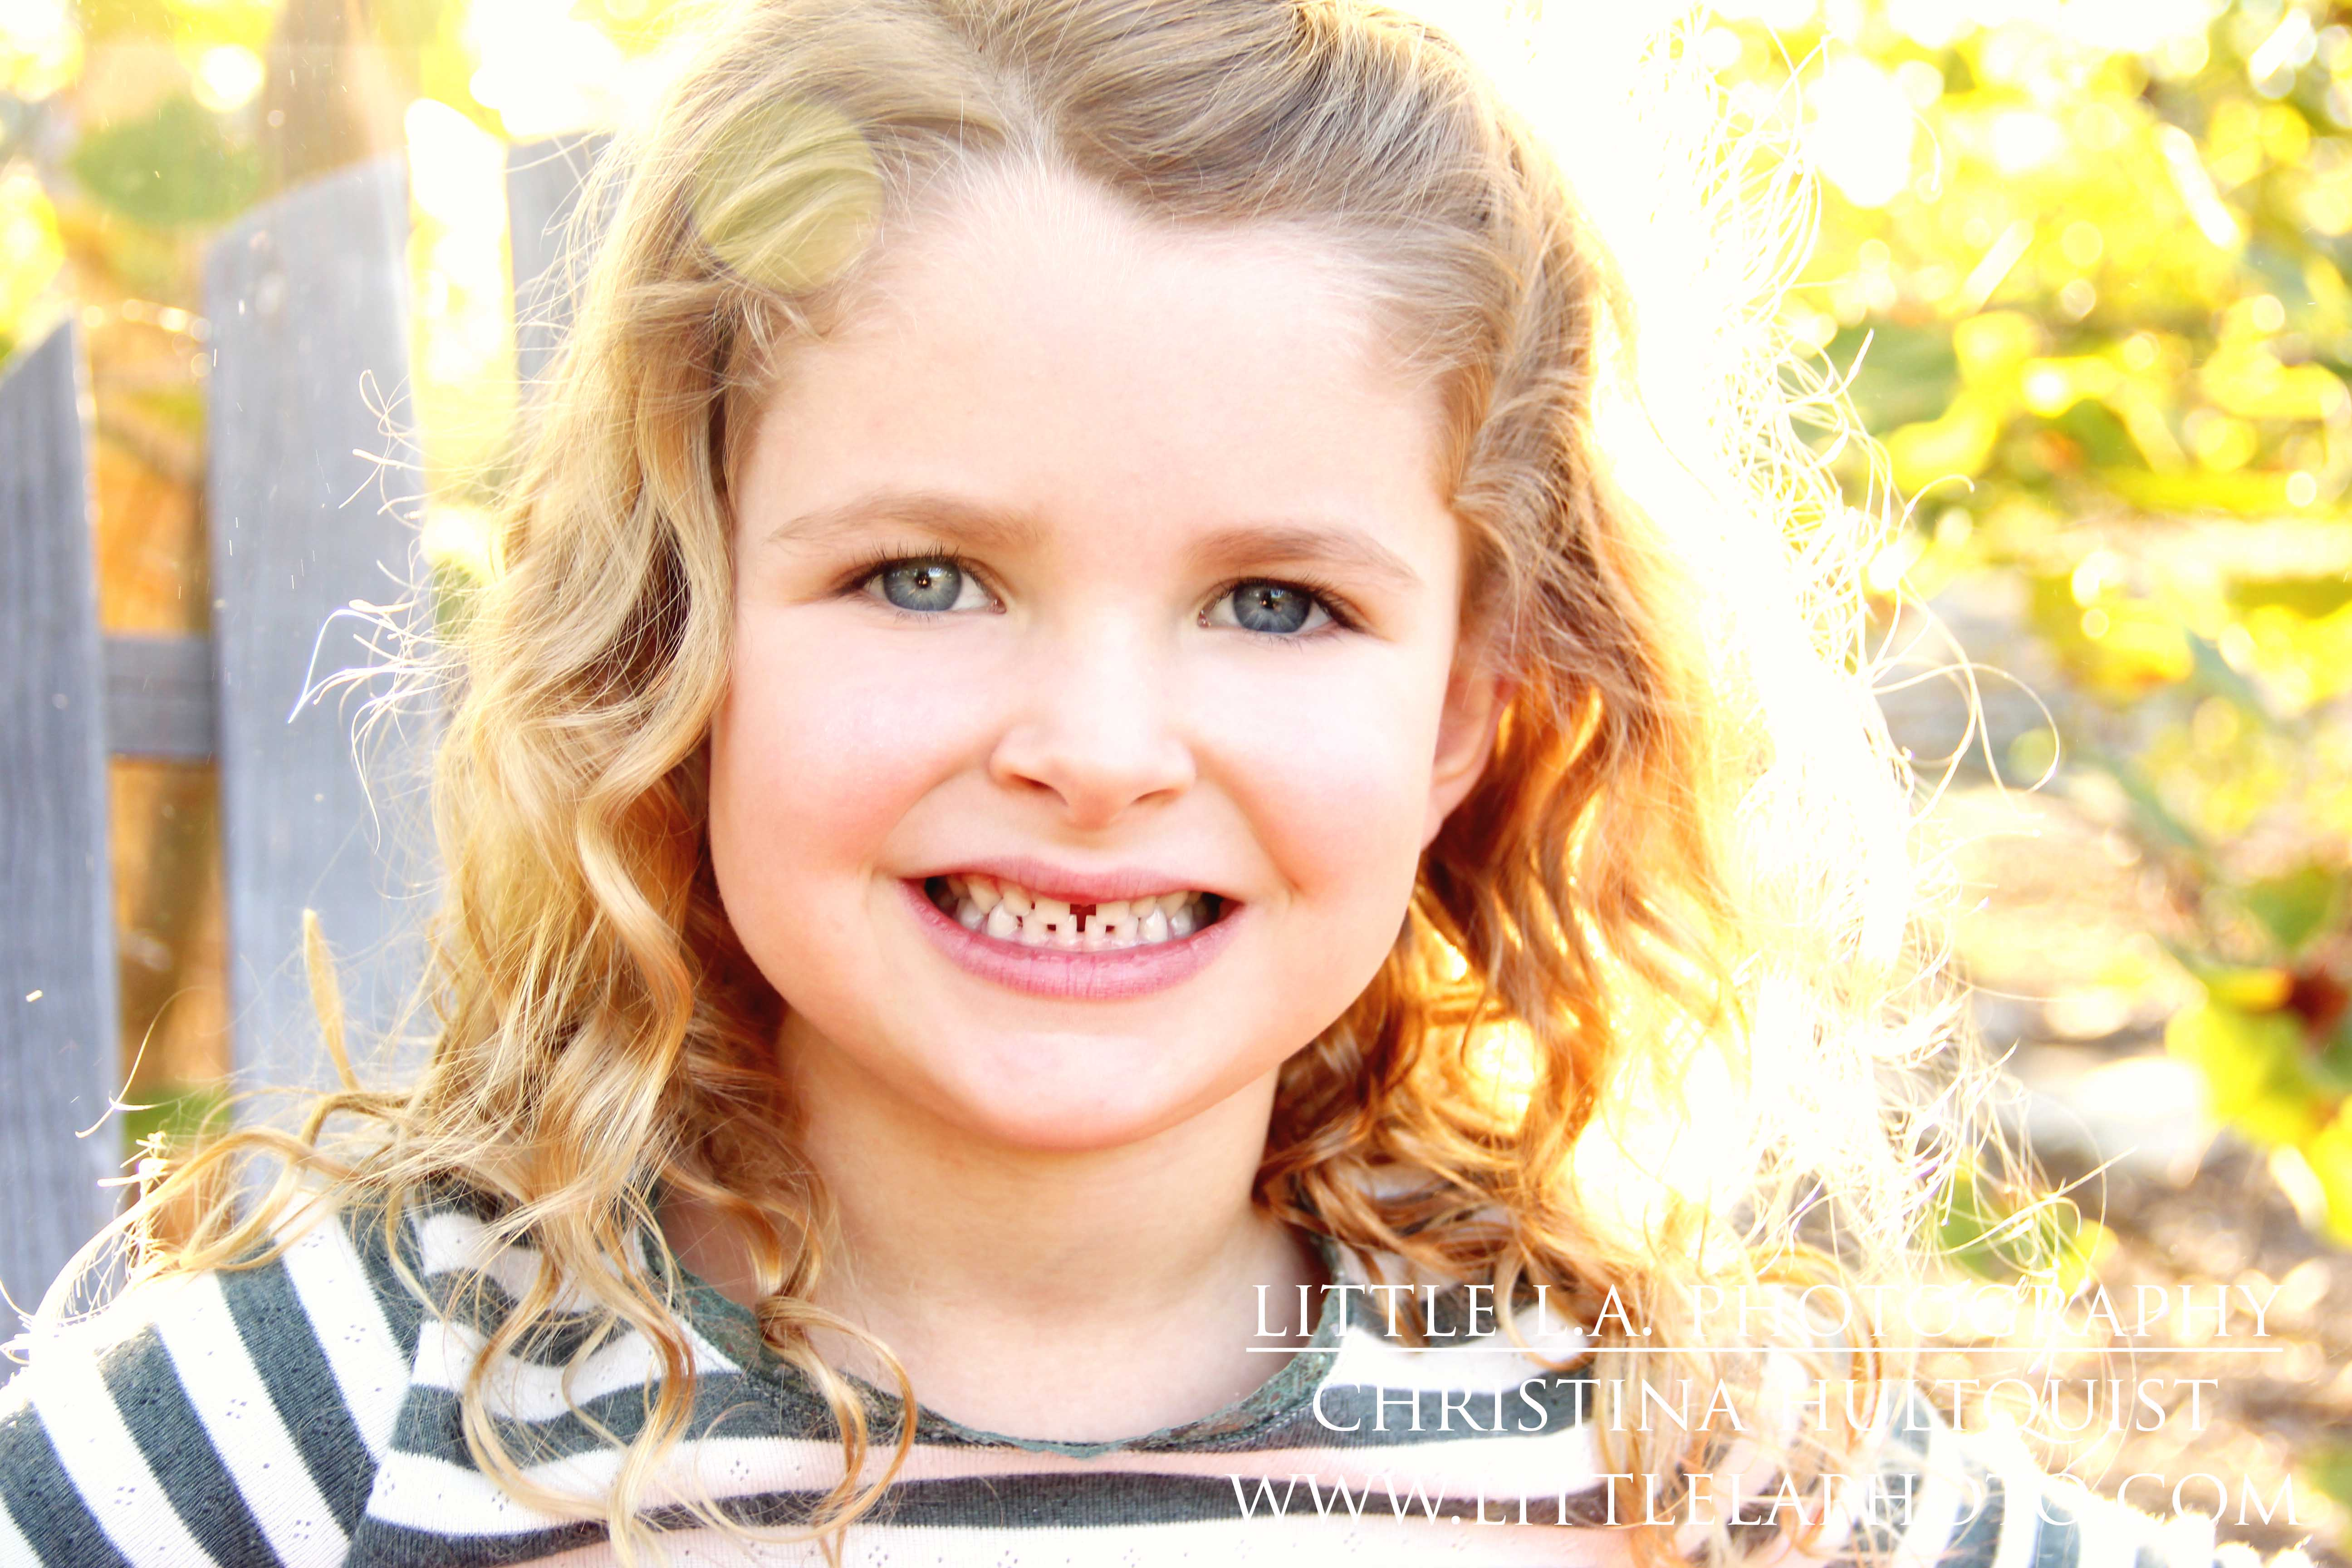 childrens photographer in pasadena and los angeles